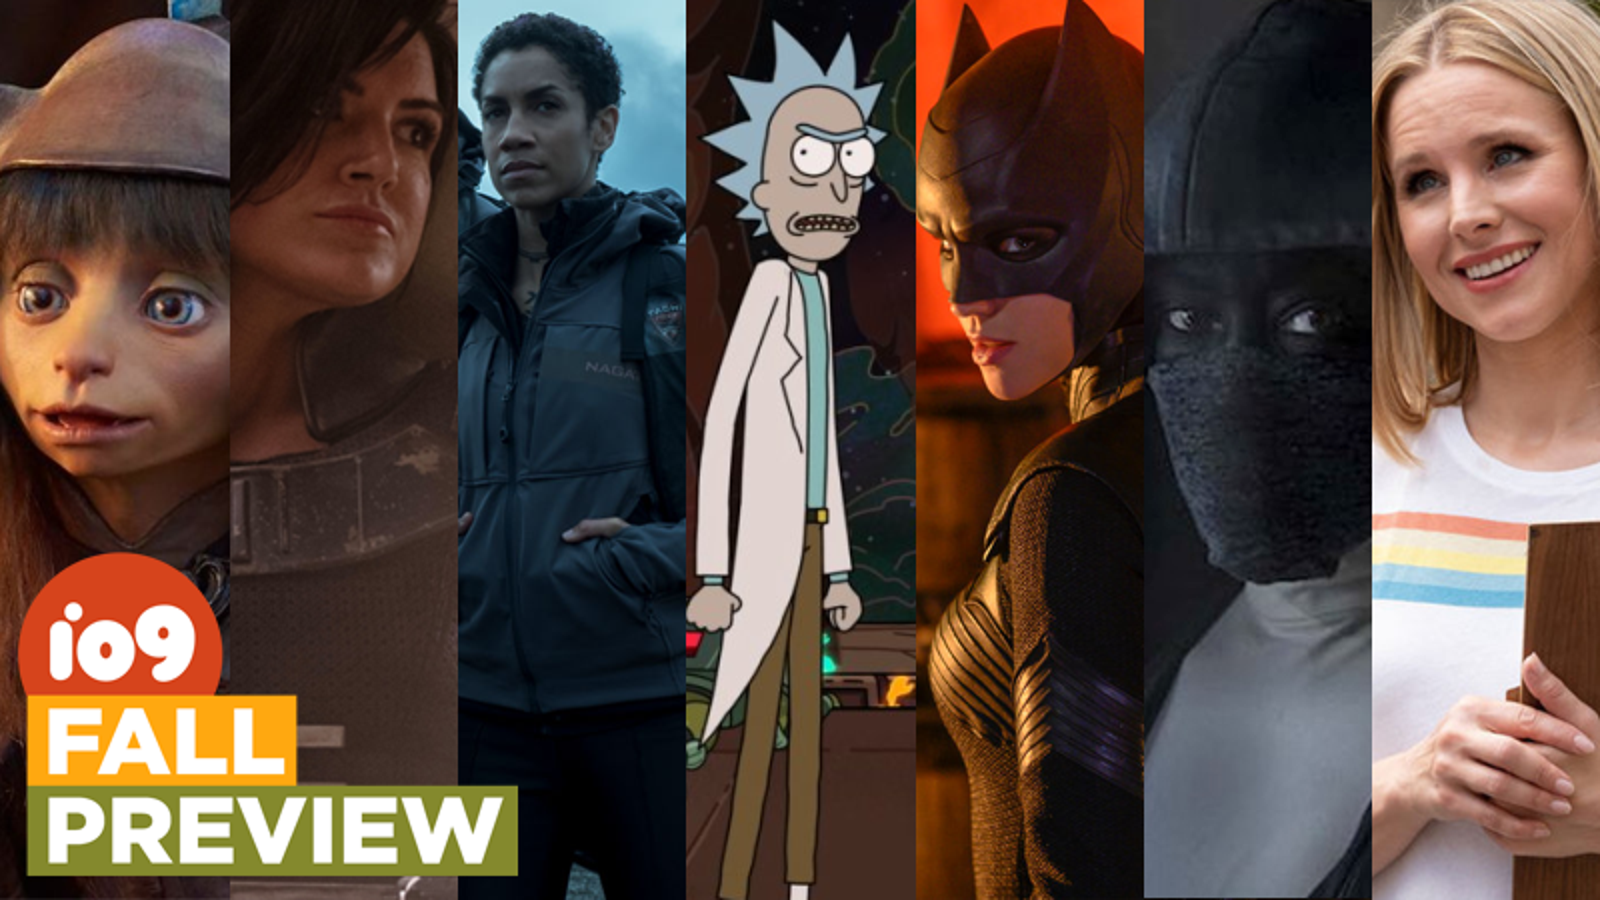 All the New and Returning Sci-Fi, Fantasy, Superhero, and Otherwise Geeky TV Shows Coming This Fall